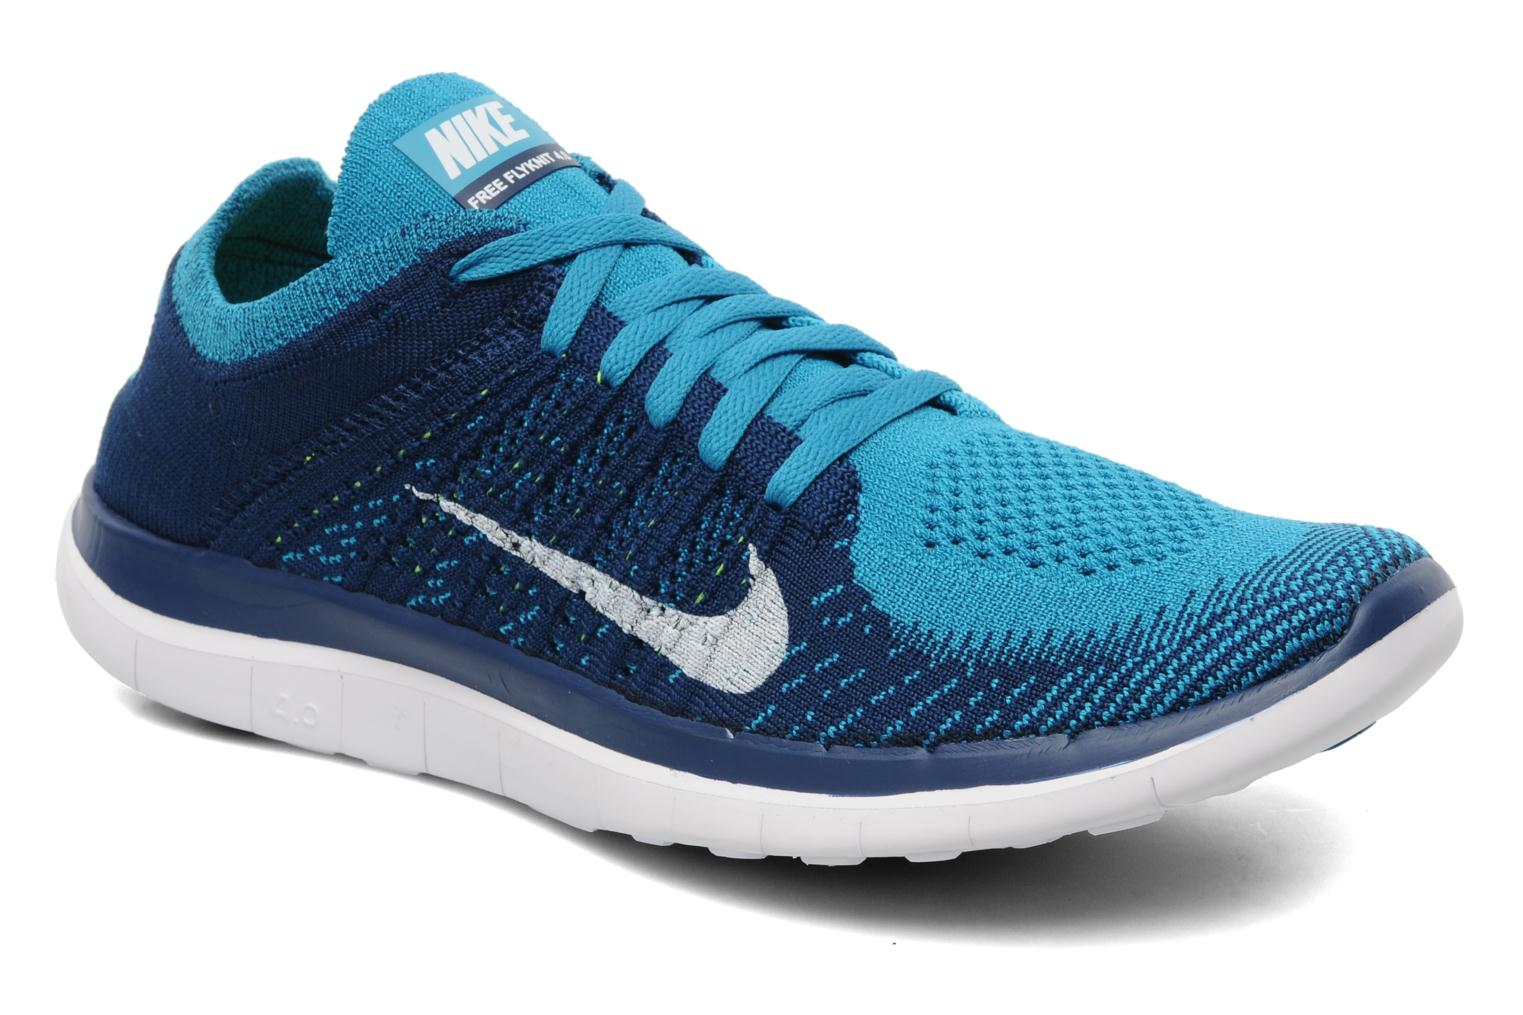 nike nike free 4 0 flyknit sport shoes in blue at 186749. Black Bedroom Furniture Sets. Home Design Ideas